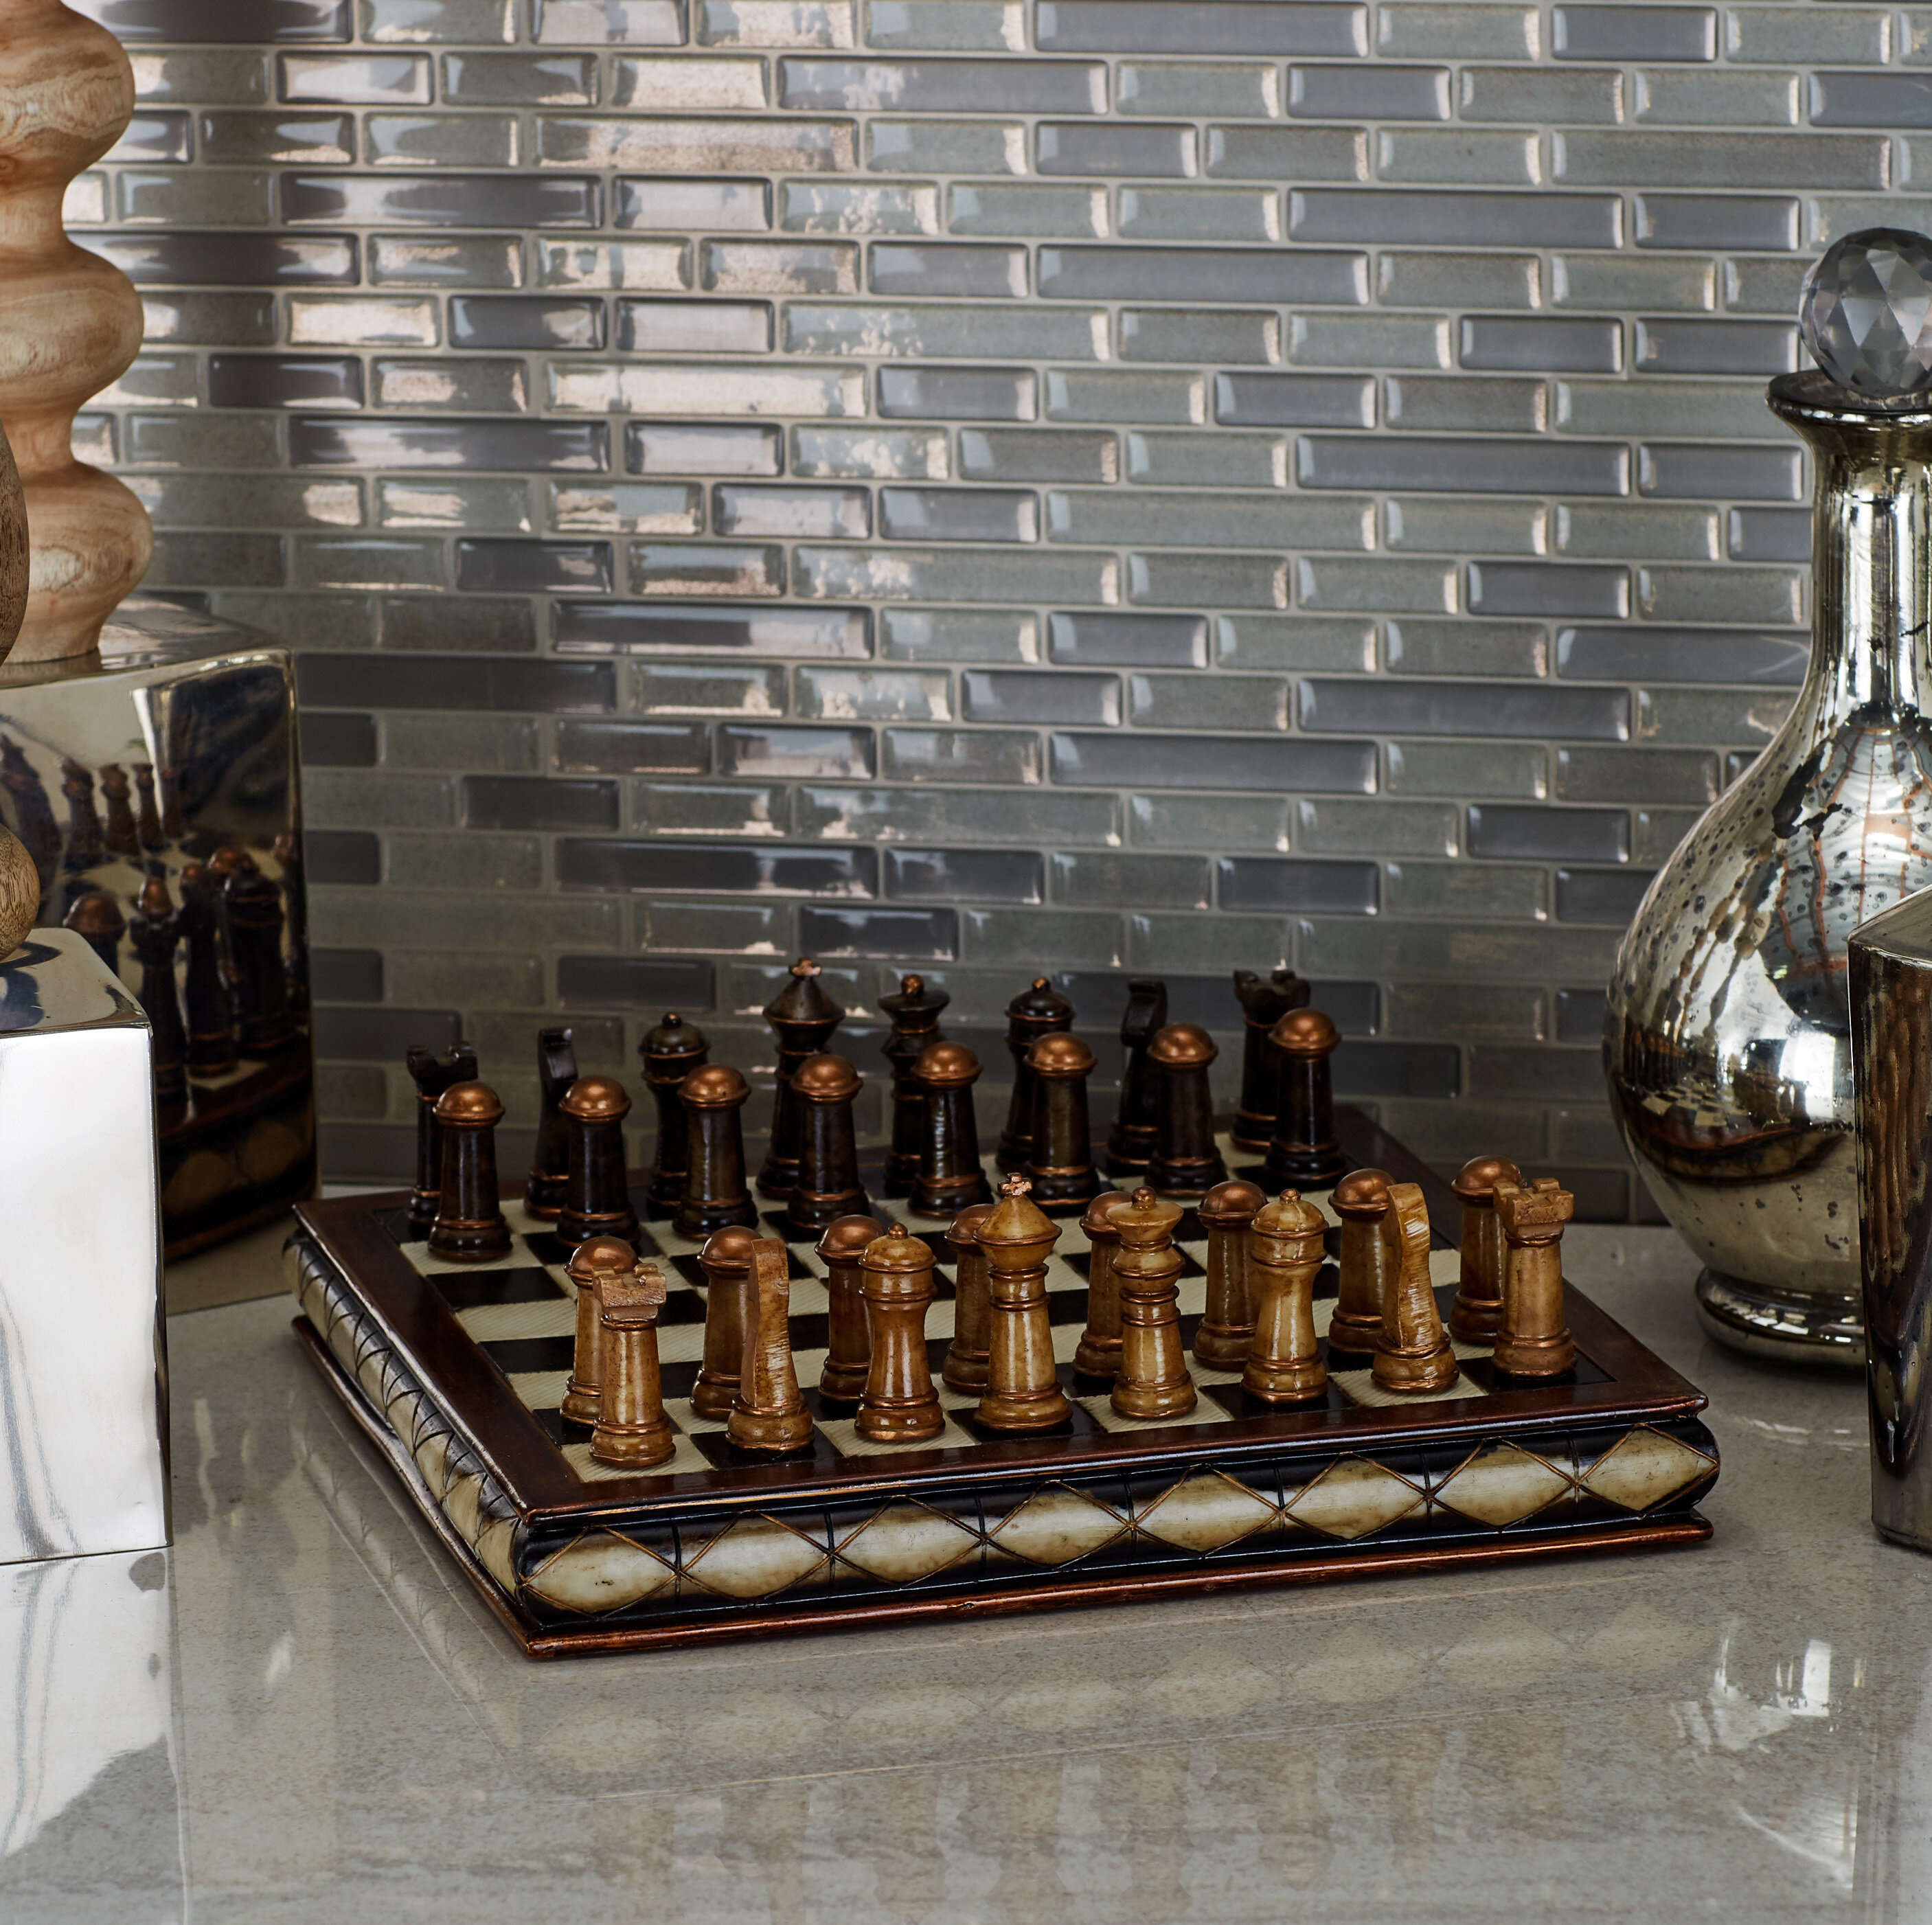 Chessboard and interior design: whats in common